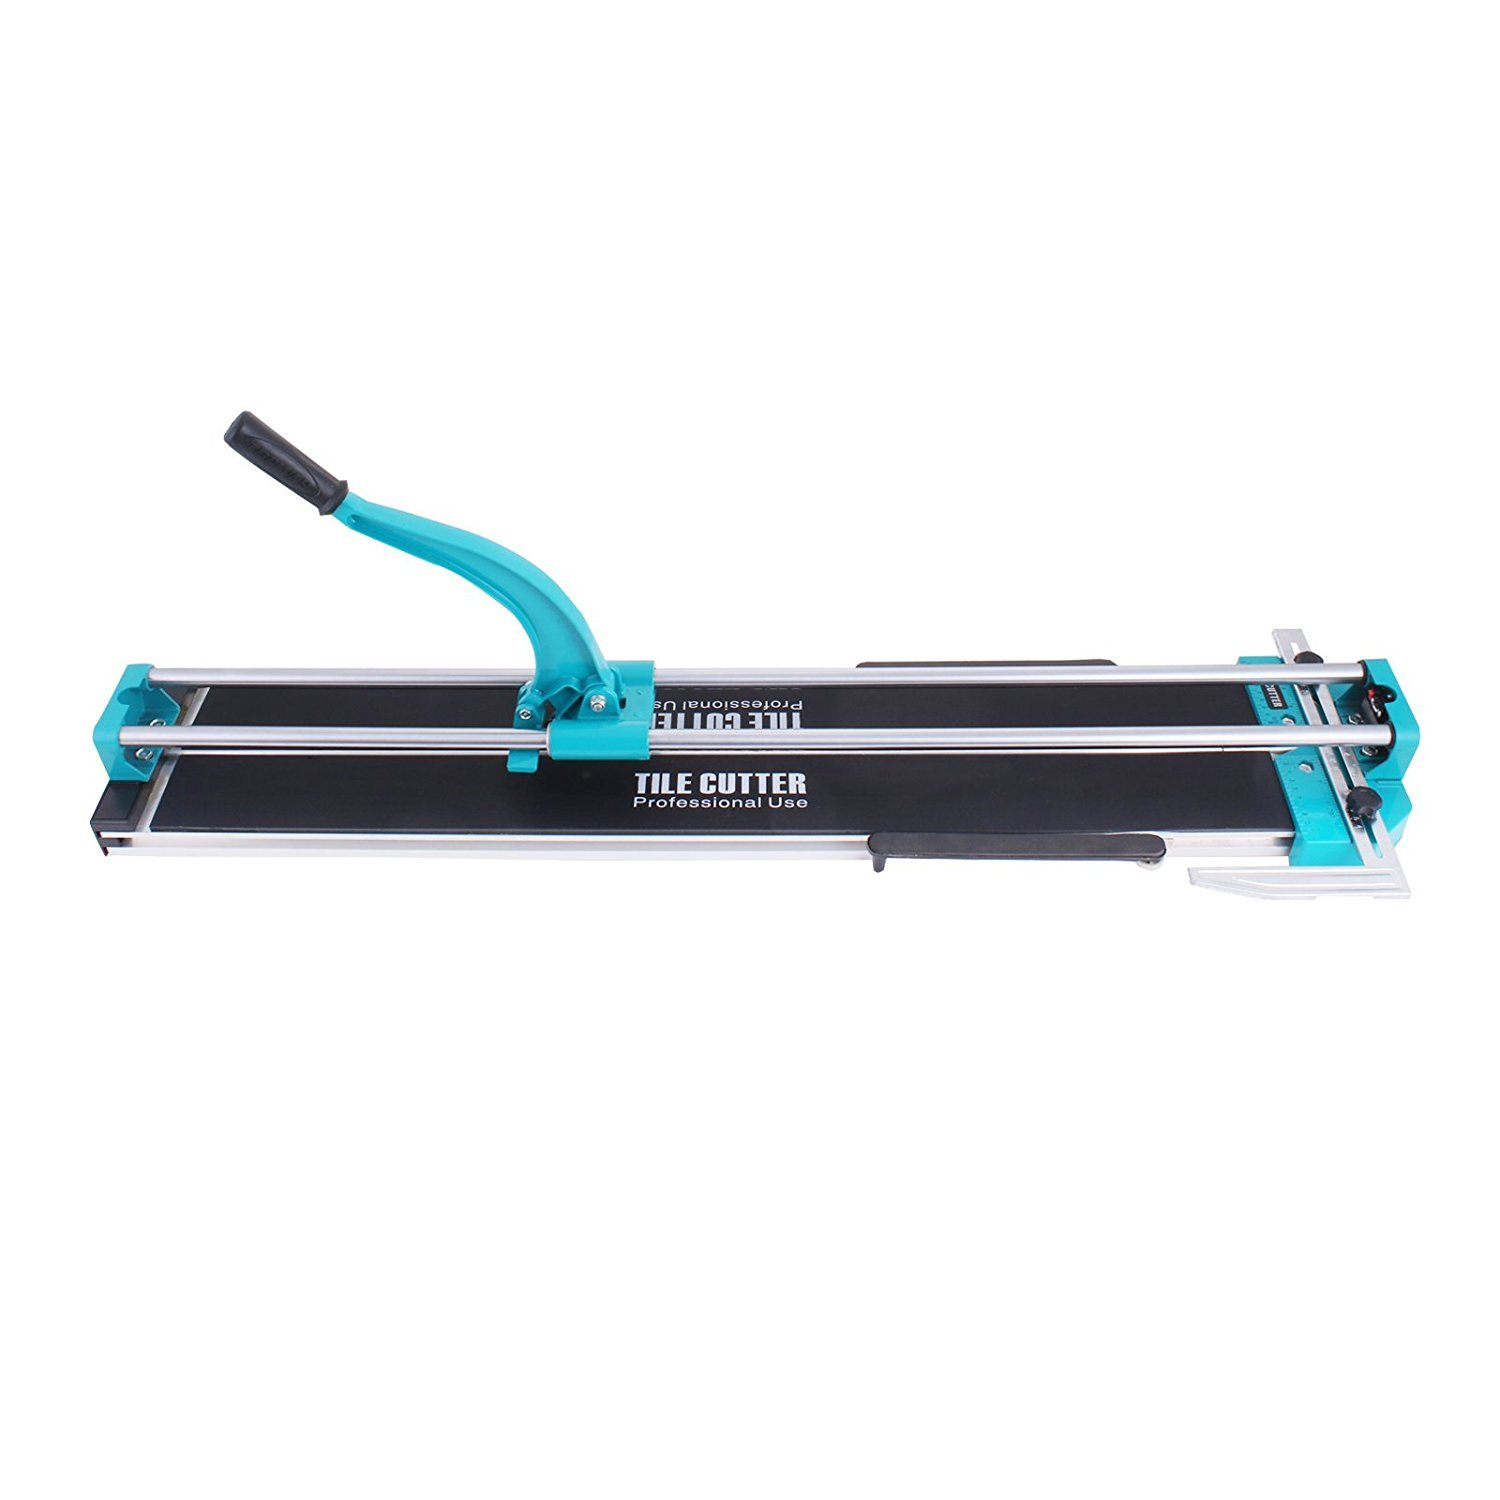 TOTOOL 40 Inch Manual Tile Cutter Professional Ceramic Tile Cutter with Solid Steel Rail and Adjustable Laser Guide Floor Tile Cutter for Porcelain and Ceramic Tiles (40 Inch) by TOTOOL (Image #5)